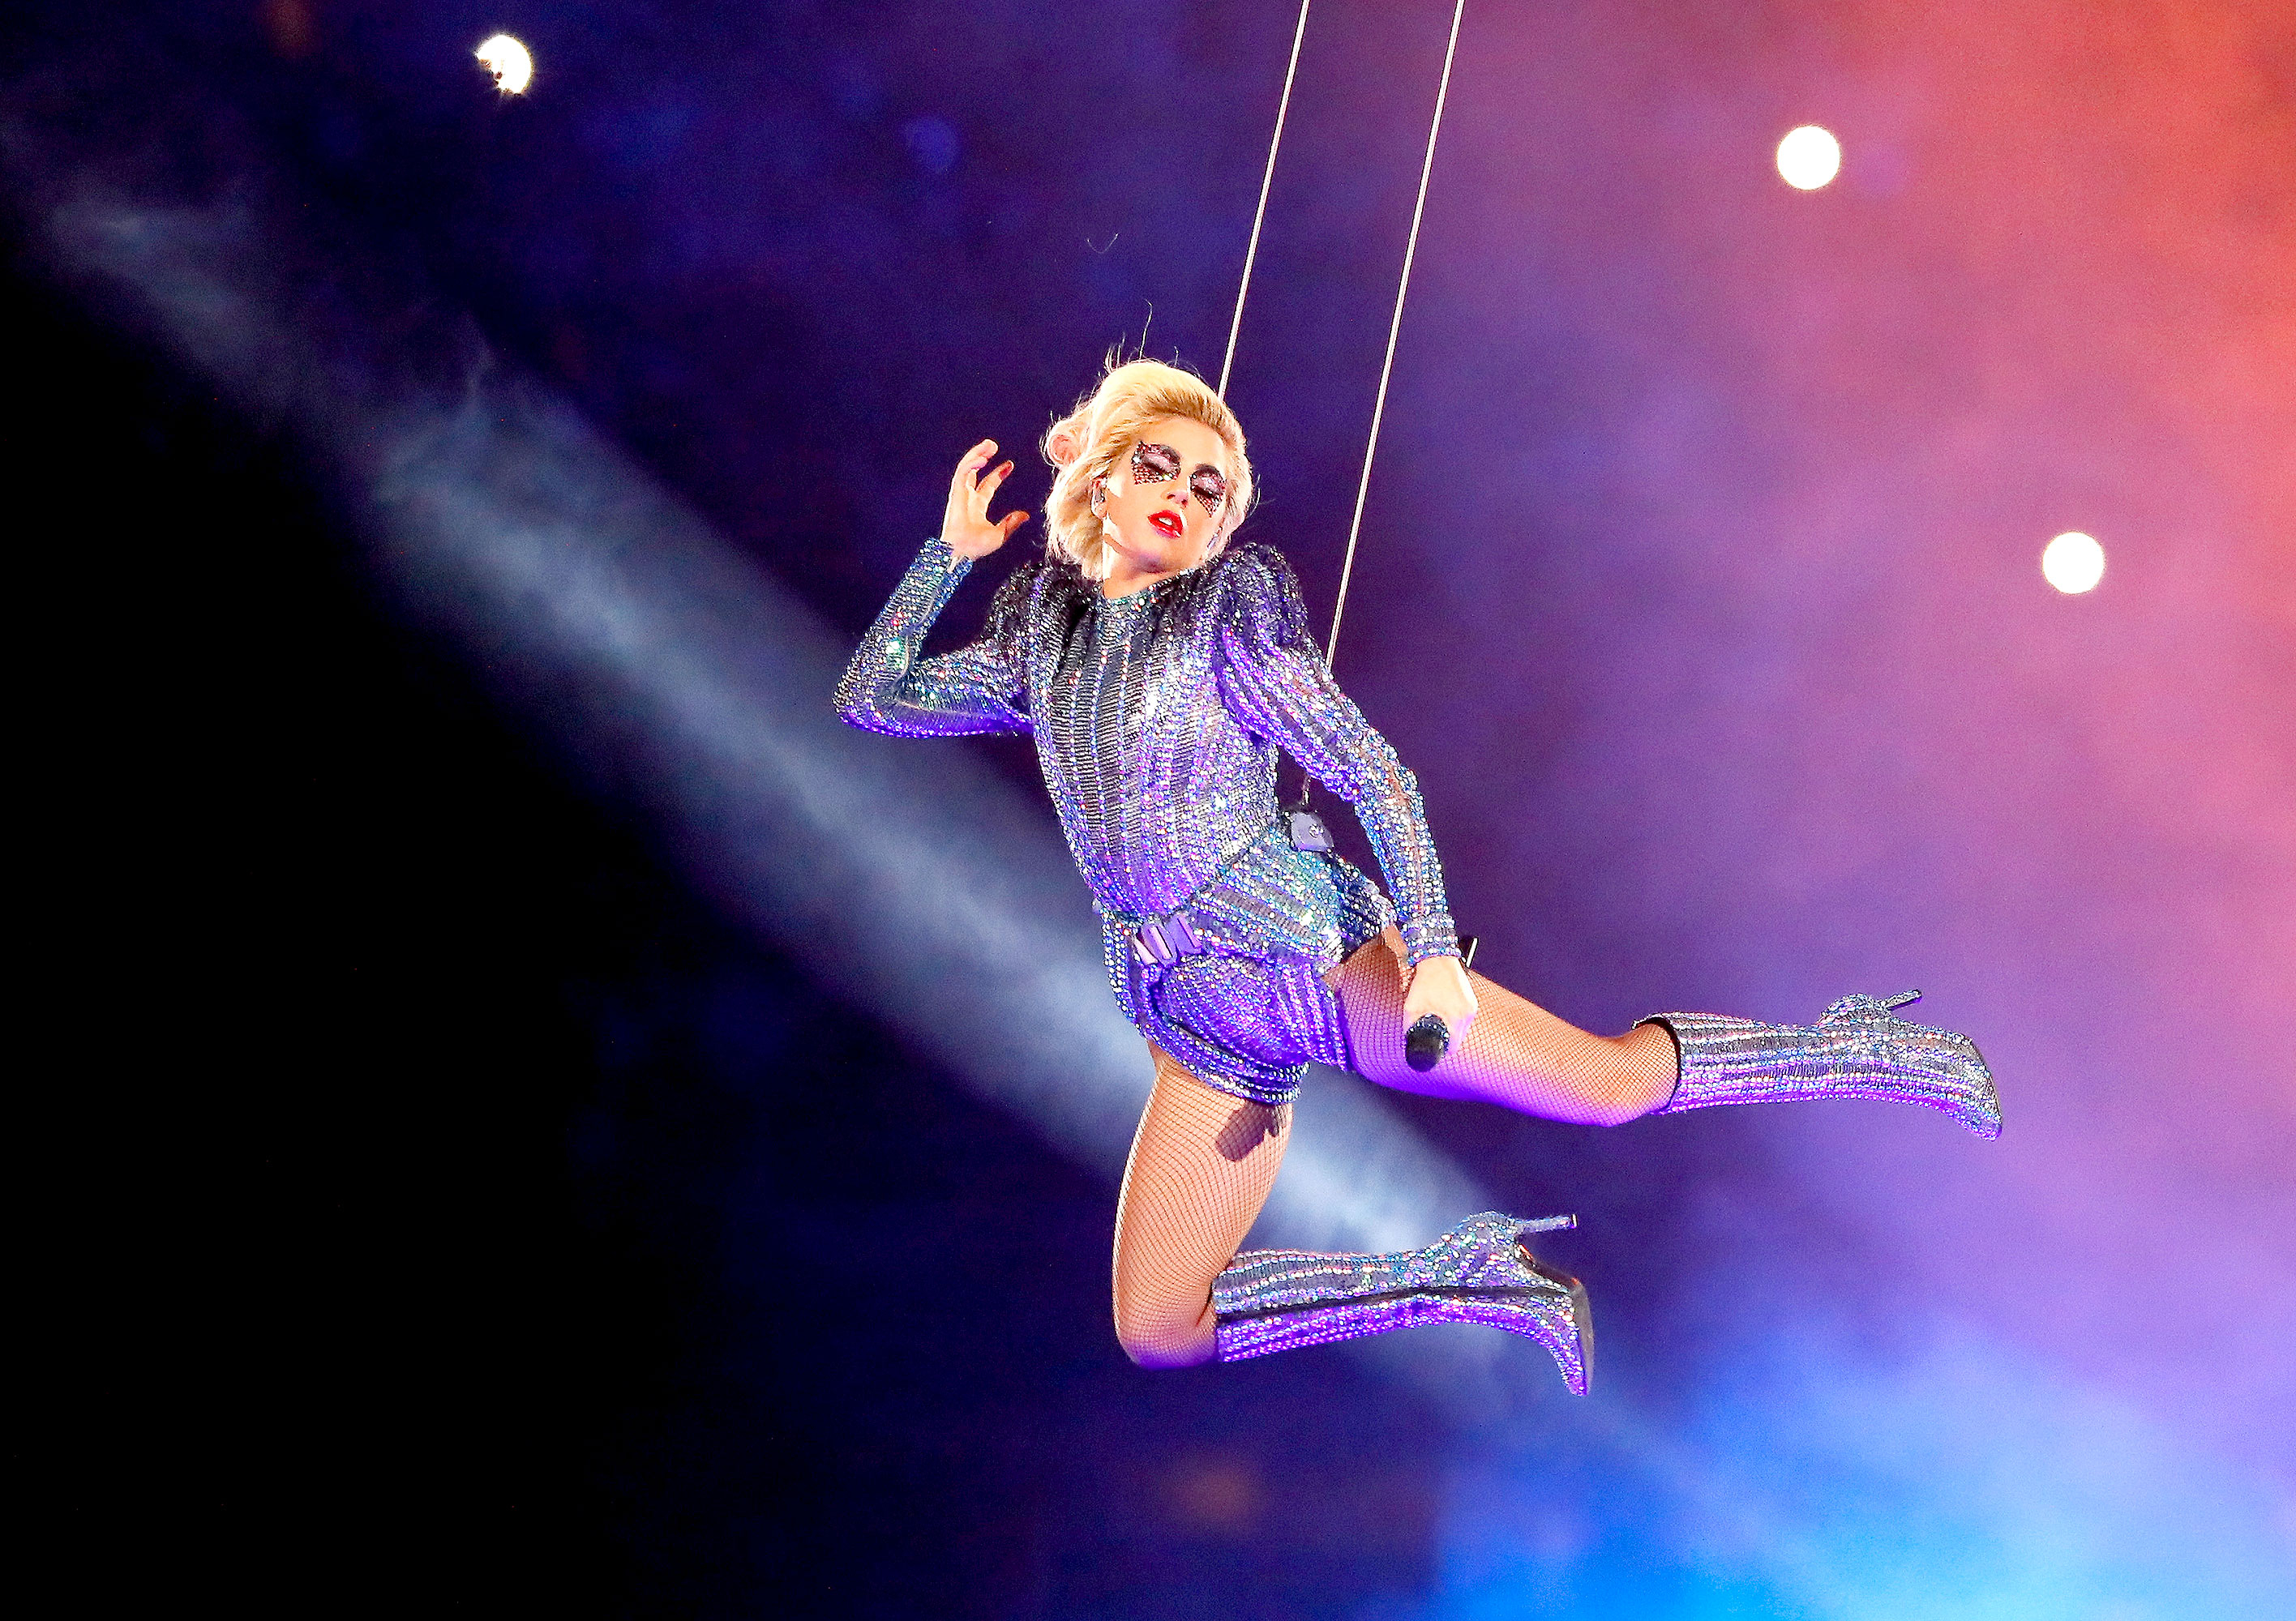 Lady Gaga performs during the Pepsi Zero Sugar Super Bowl 51 Halftime Show at NRG Stadium on February 5, 2017 in Houston, Texas.